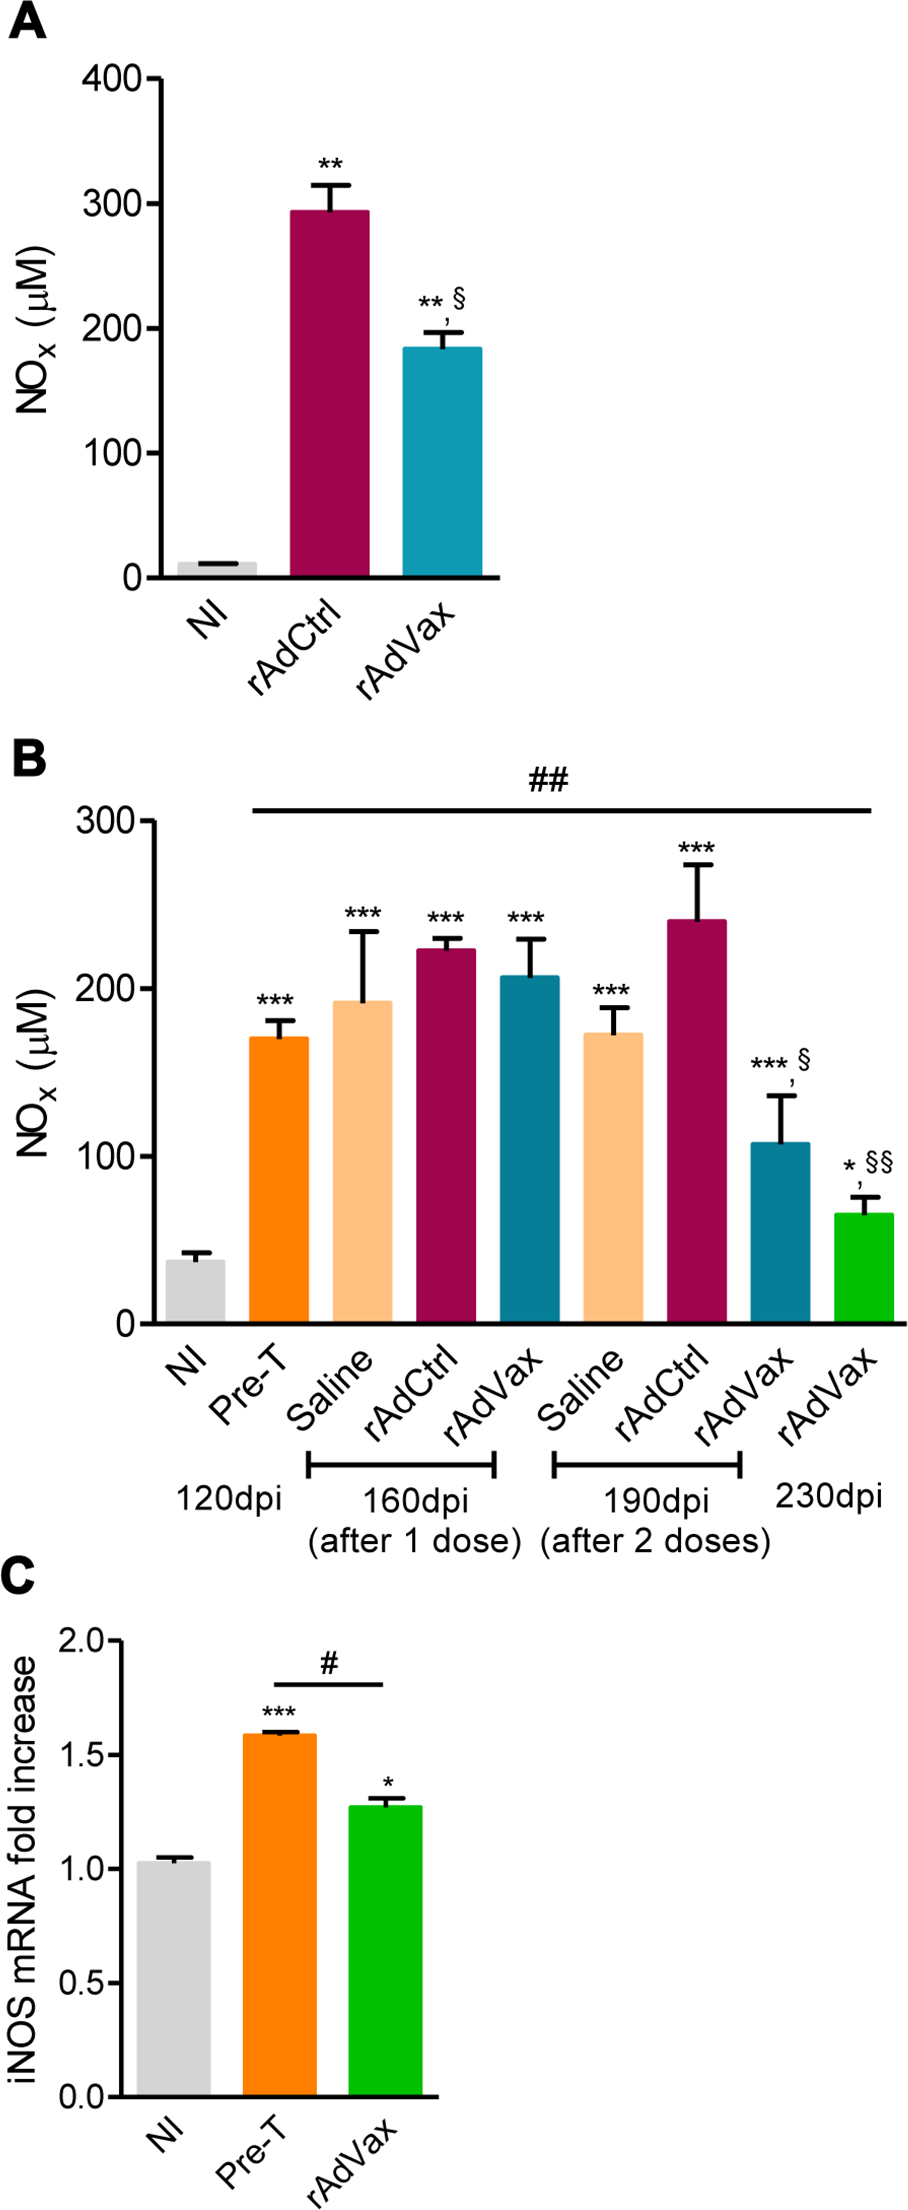 rAdVax immunotherapy modulated serum NOx levels and cardiac iNOS expression in chronically <i>T. cruzi</i>-infected mice.